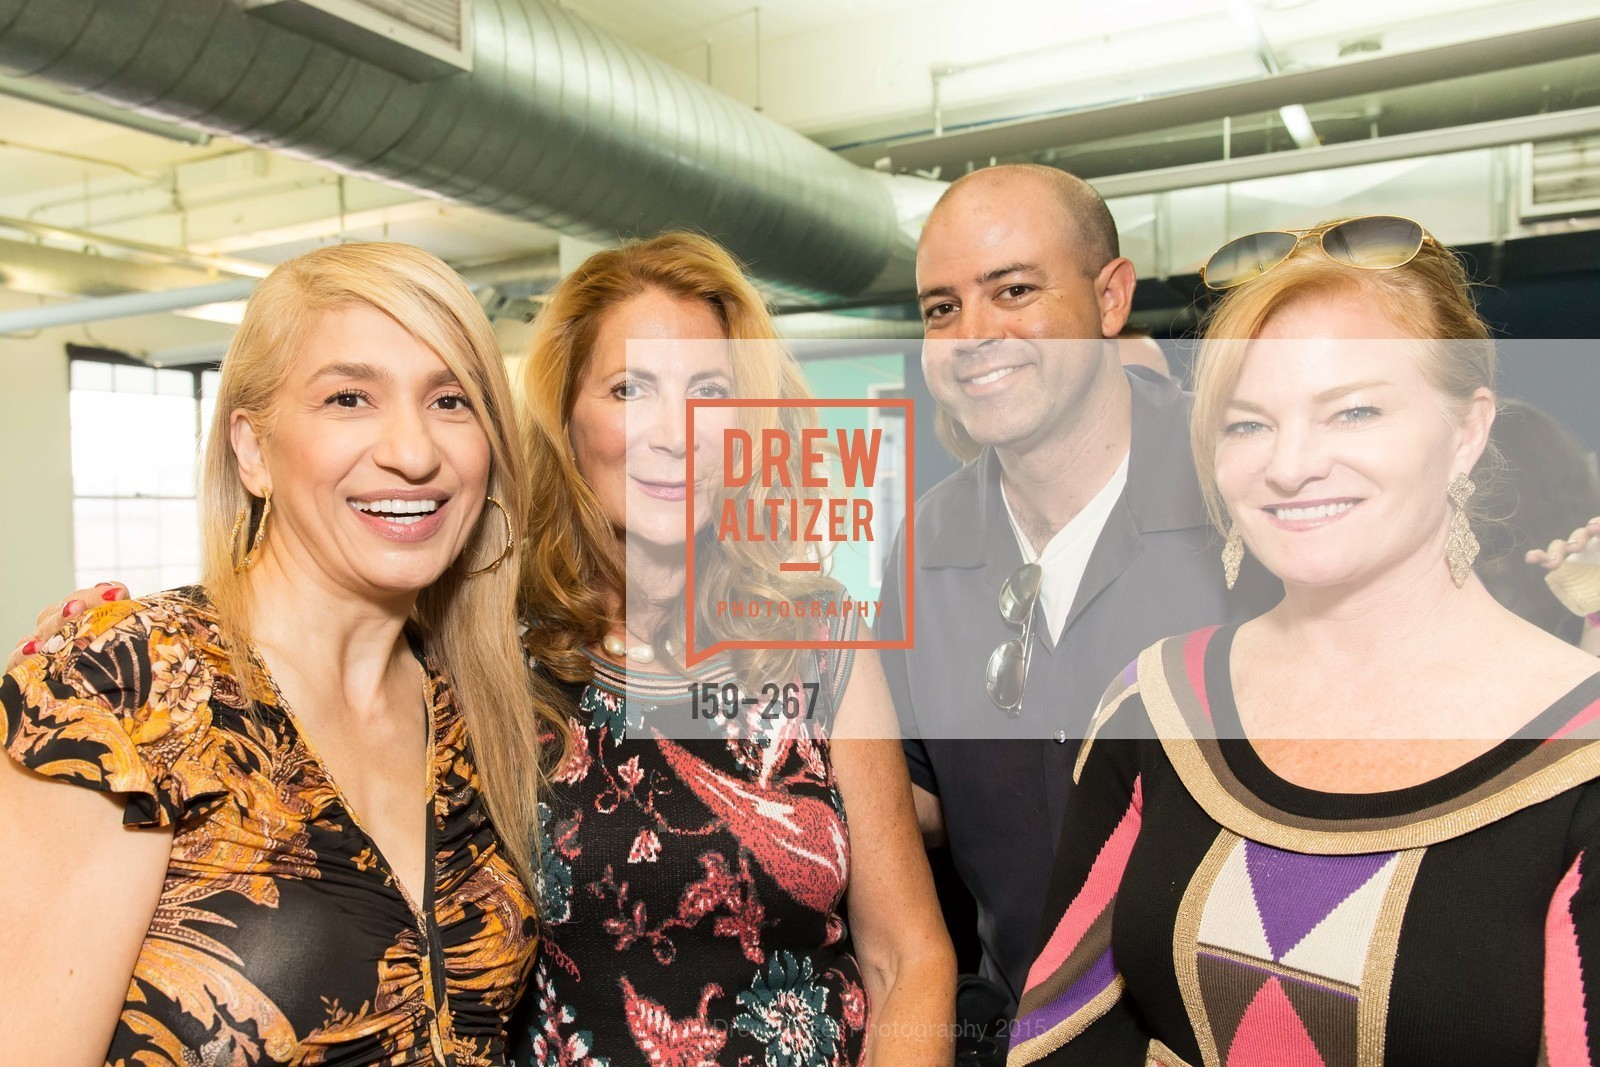 Navid Armstrong, Patricia Ferrin Loucks, Brian Cano, Rene Rodman, Pre-Party for Cirque du Soiree 2015, If(we.co) Headquarters. 848 Battery St, August 27th, 2015,Drew Altizer, Drew Altizer Photography, full-service agency, private events, San Francisco photographer, photographer california